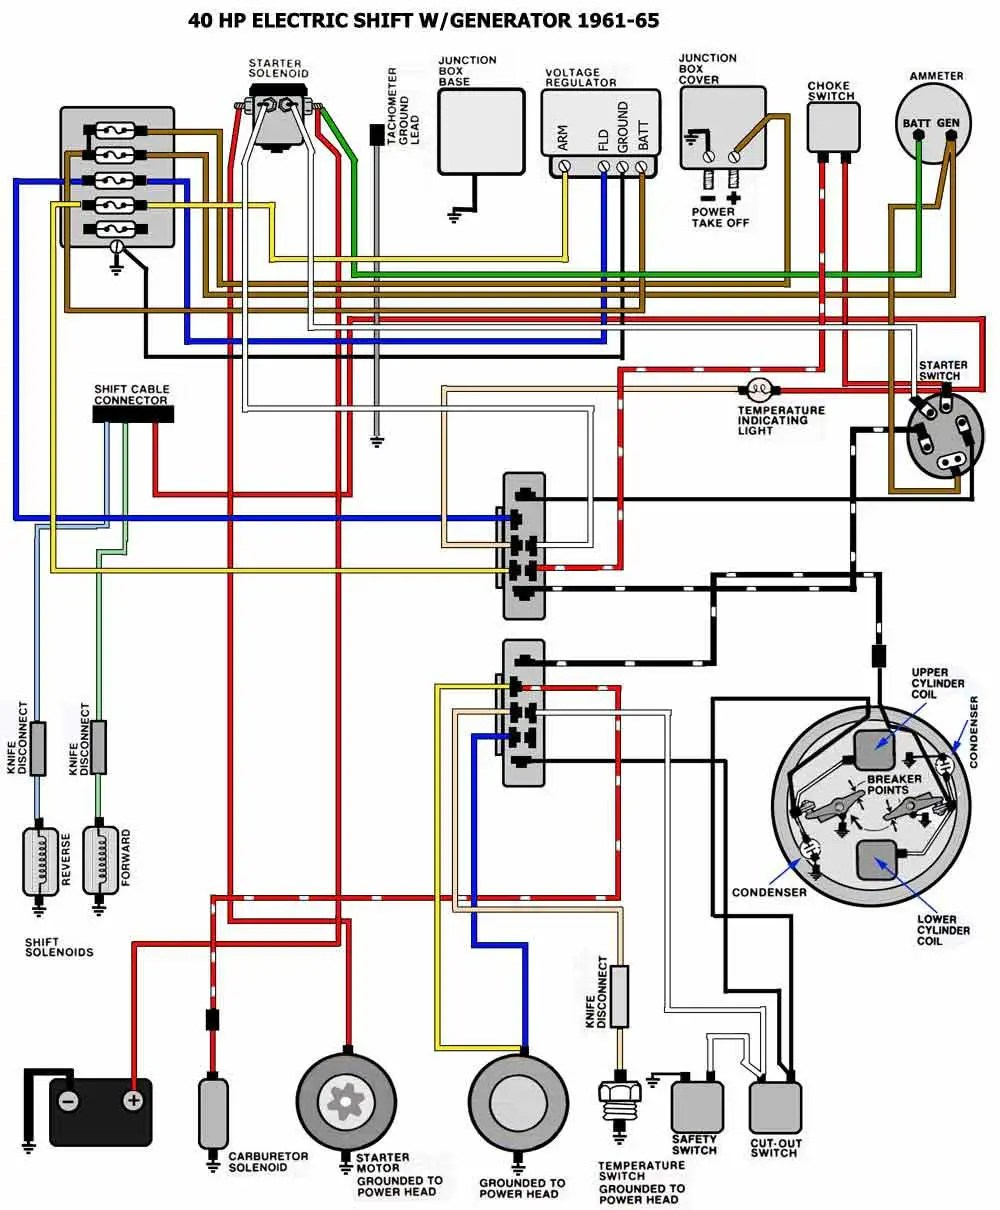 hight resolution of hp wiring diagram wiring diagram expert vanguard 16 hp wiring diagram hp wiring diagram